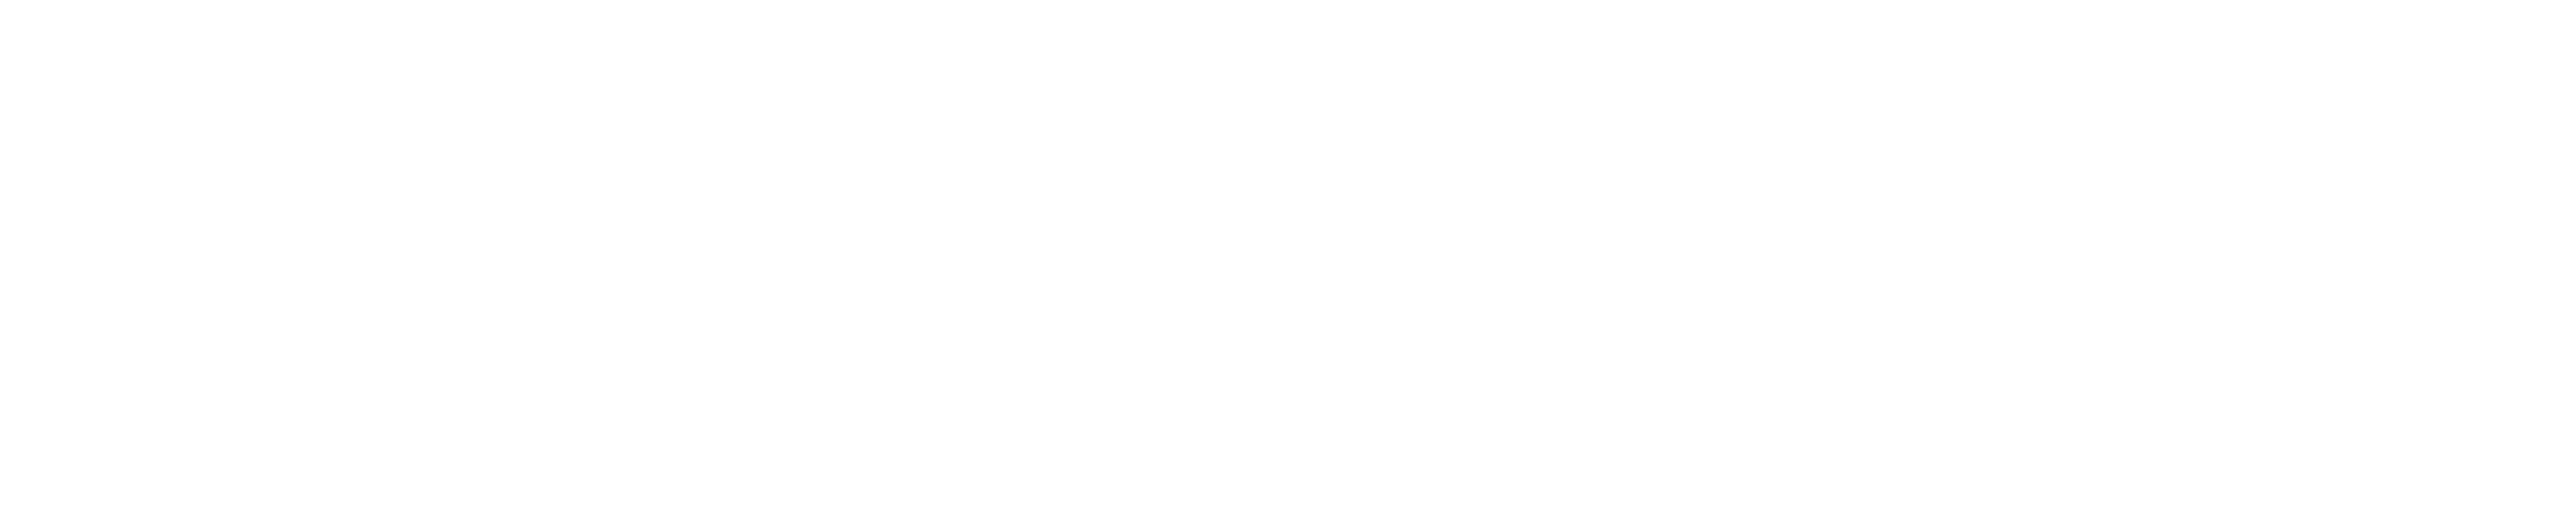 houston coalition for life